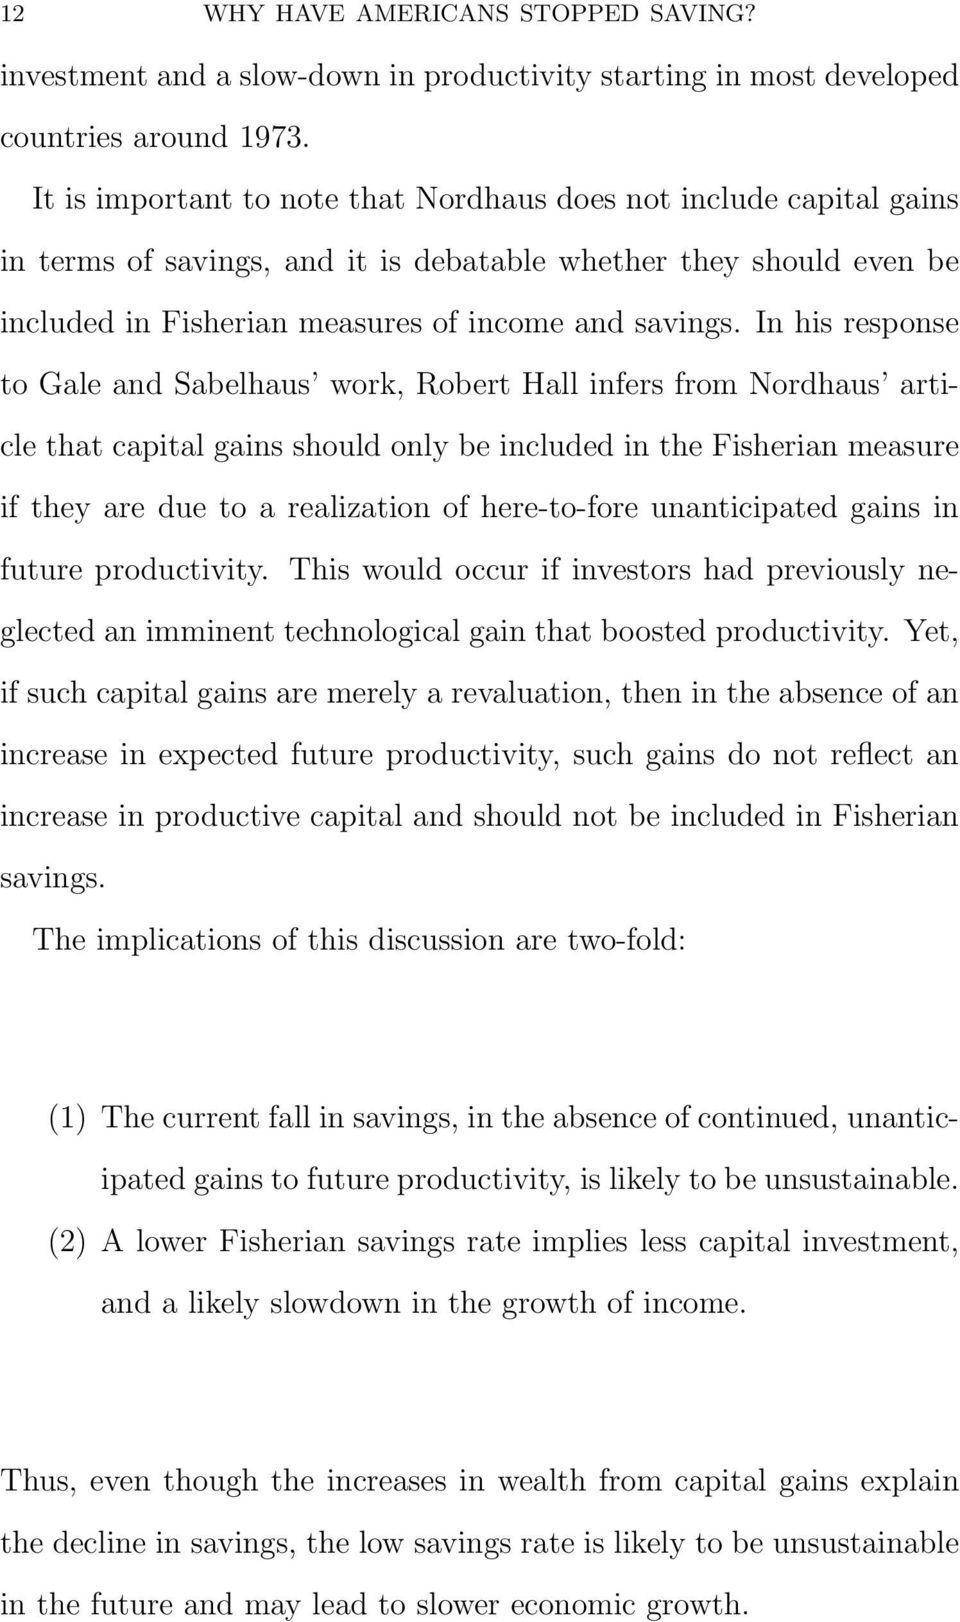 In his response to Gale and Sabelhaus work, Robert Hall infers from Nordhaus article that capital gains should only be included in the Fisherian measure if they are due to a realization of